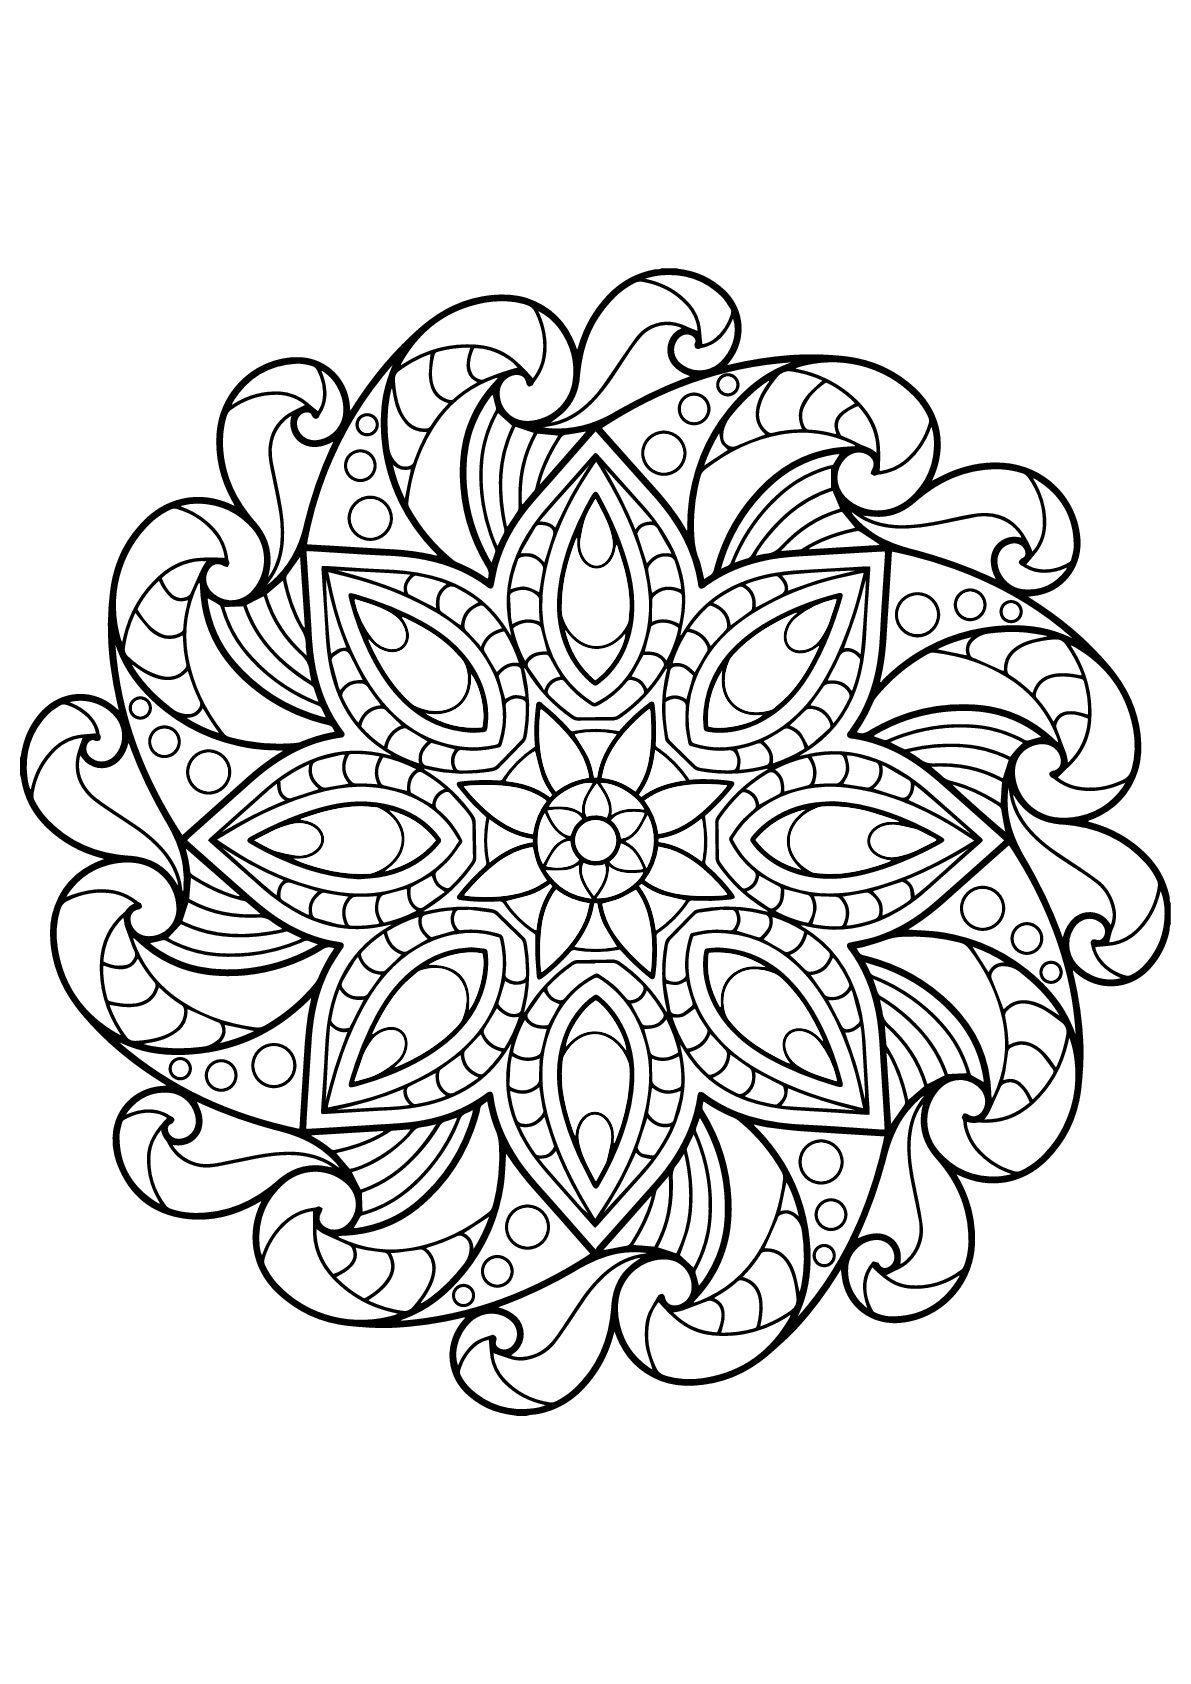 Here Are Difficult Mandalas Coloring Pages For Adults To Print For Free Mandala Is A Sanskrit W Mandala Coloring Books Mandala Coloring Mandala Coloring Pages